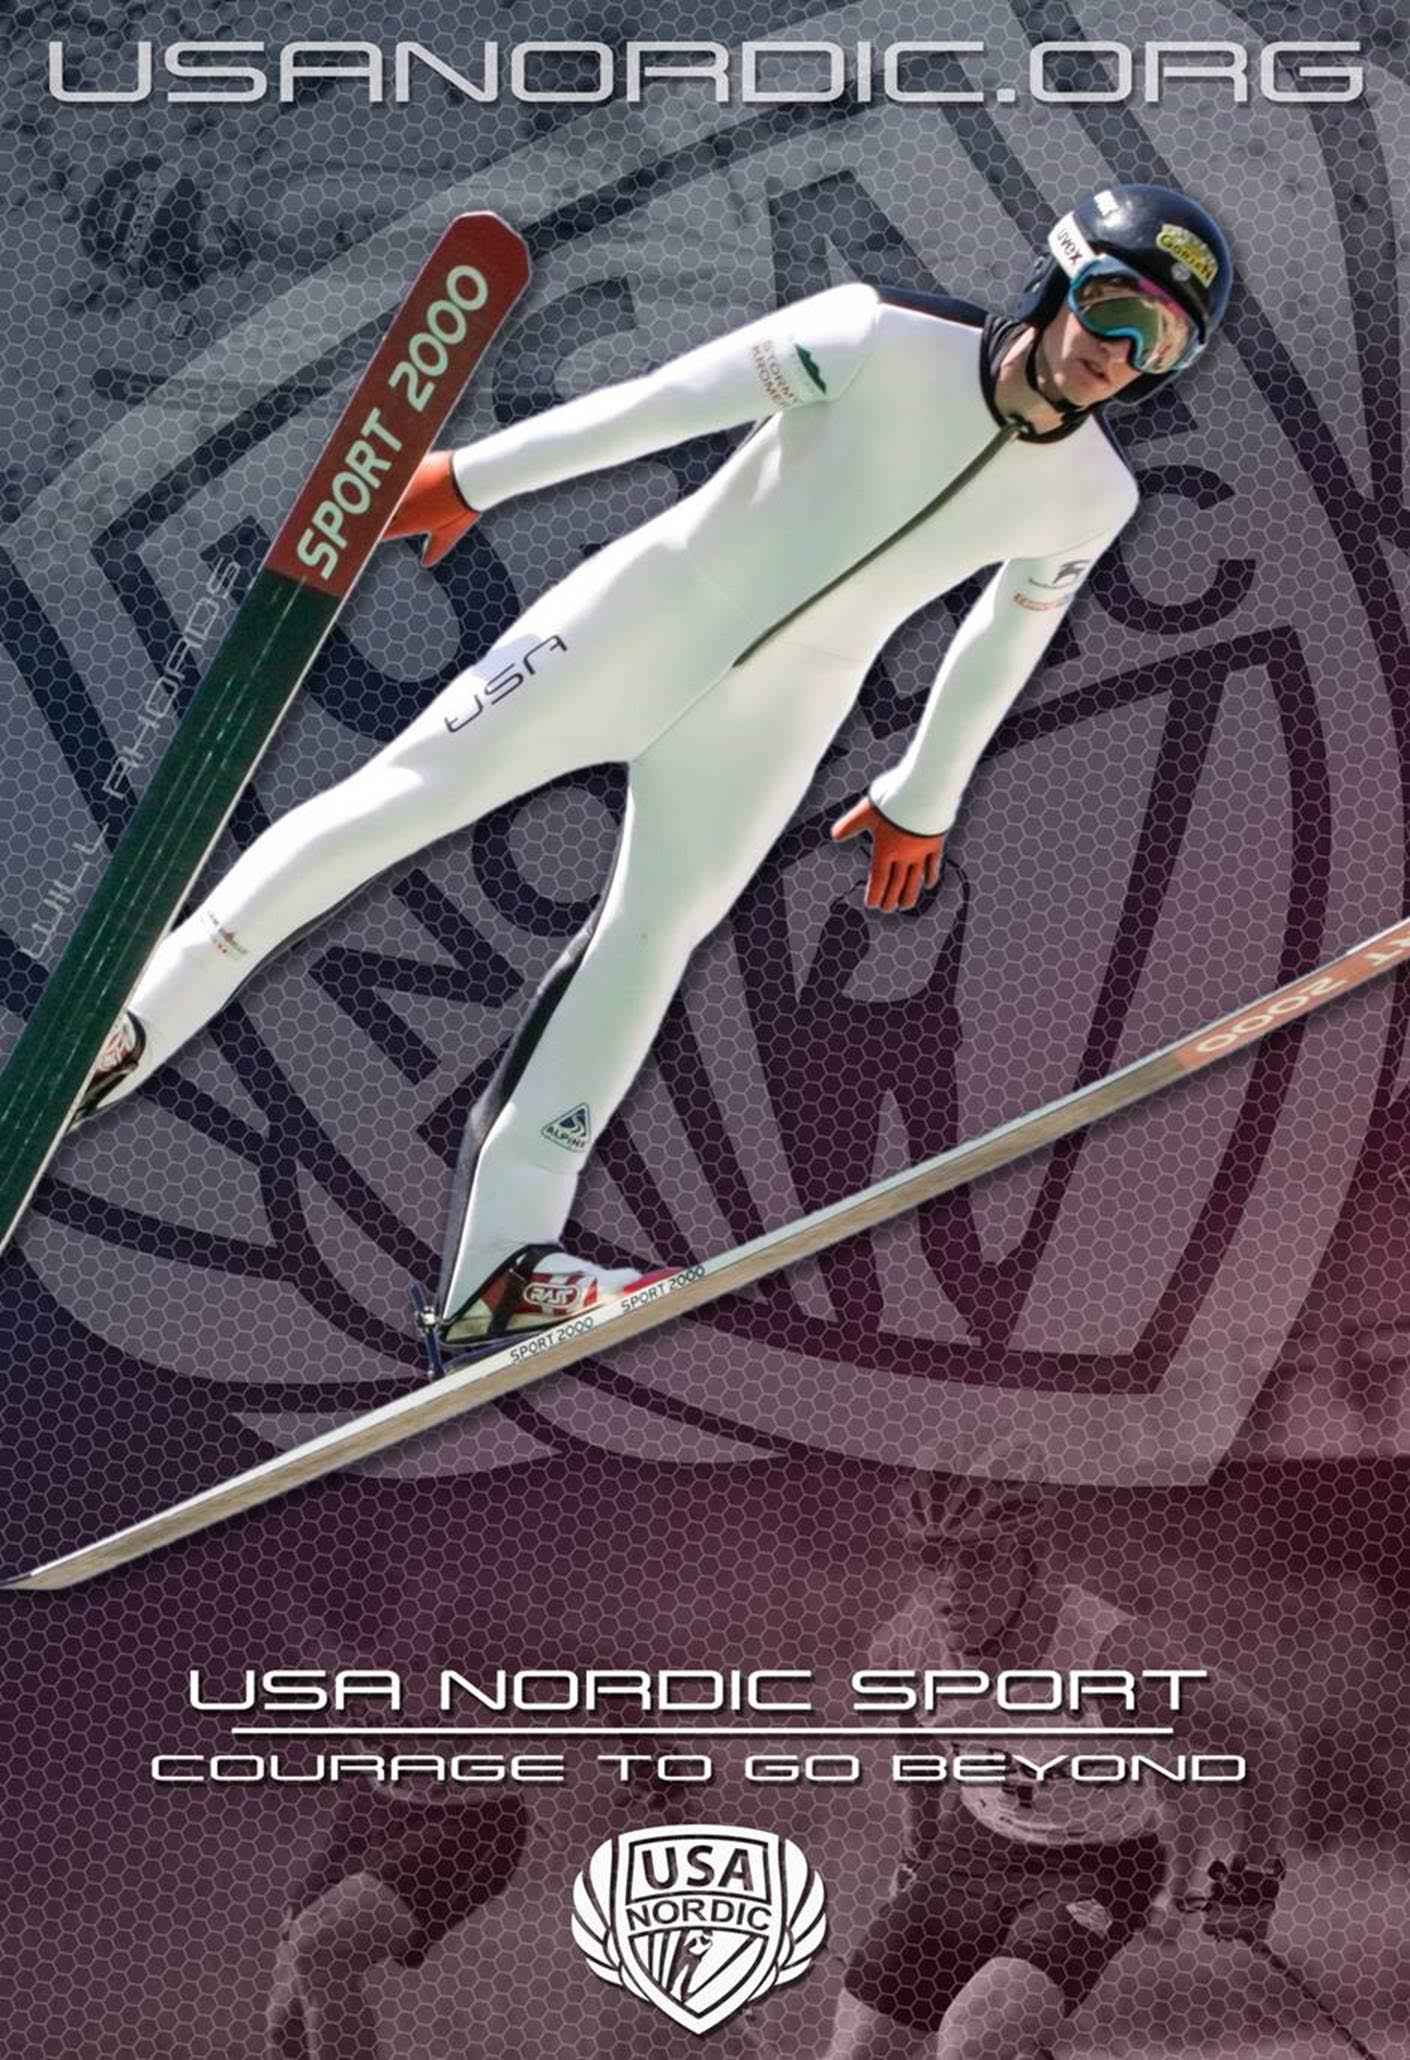 GLOBAL GUARDIAN SPONSORS THE USA SKI JUMPING AND NORDIC COMBINED TEAMS